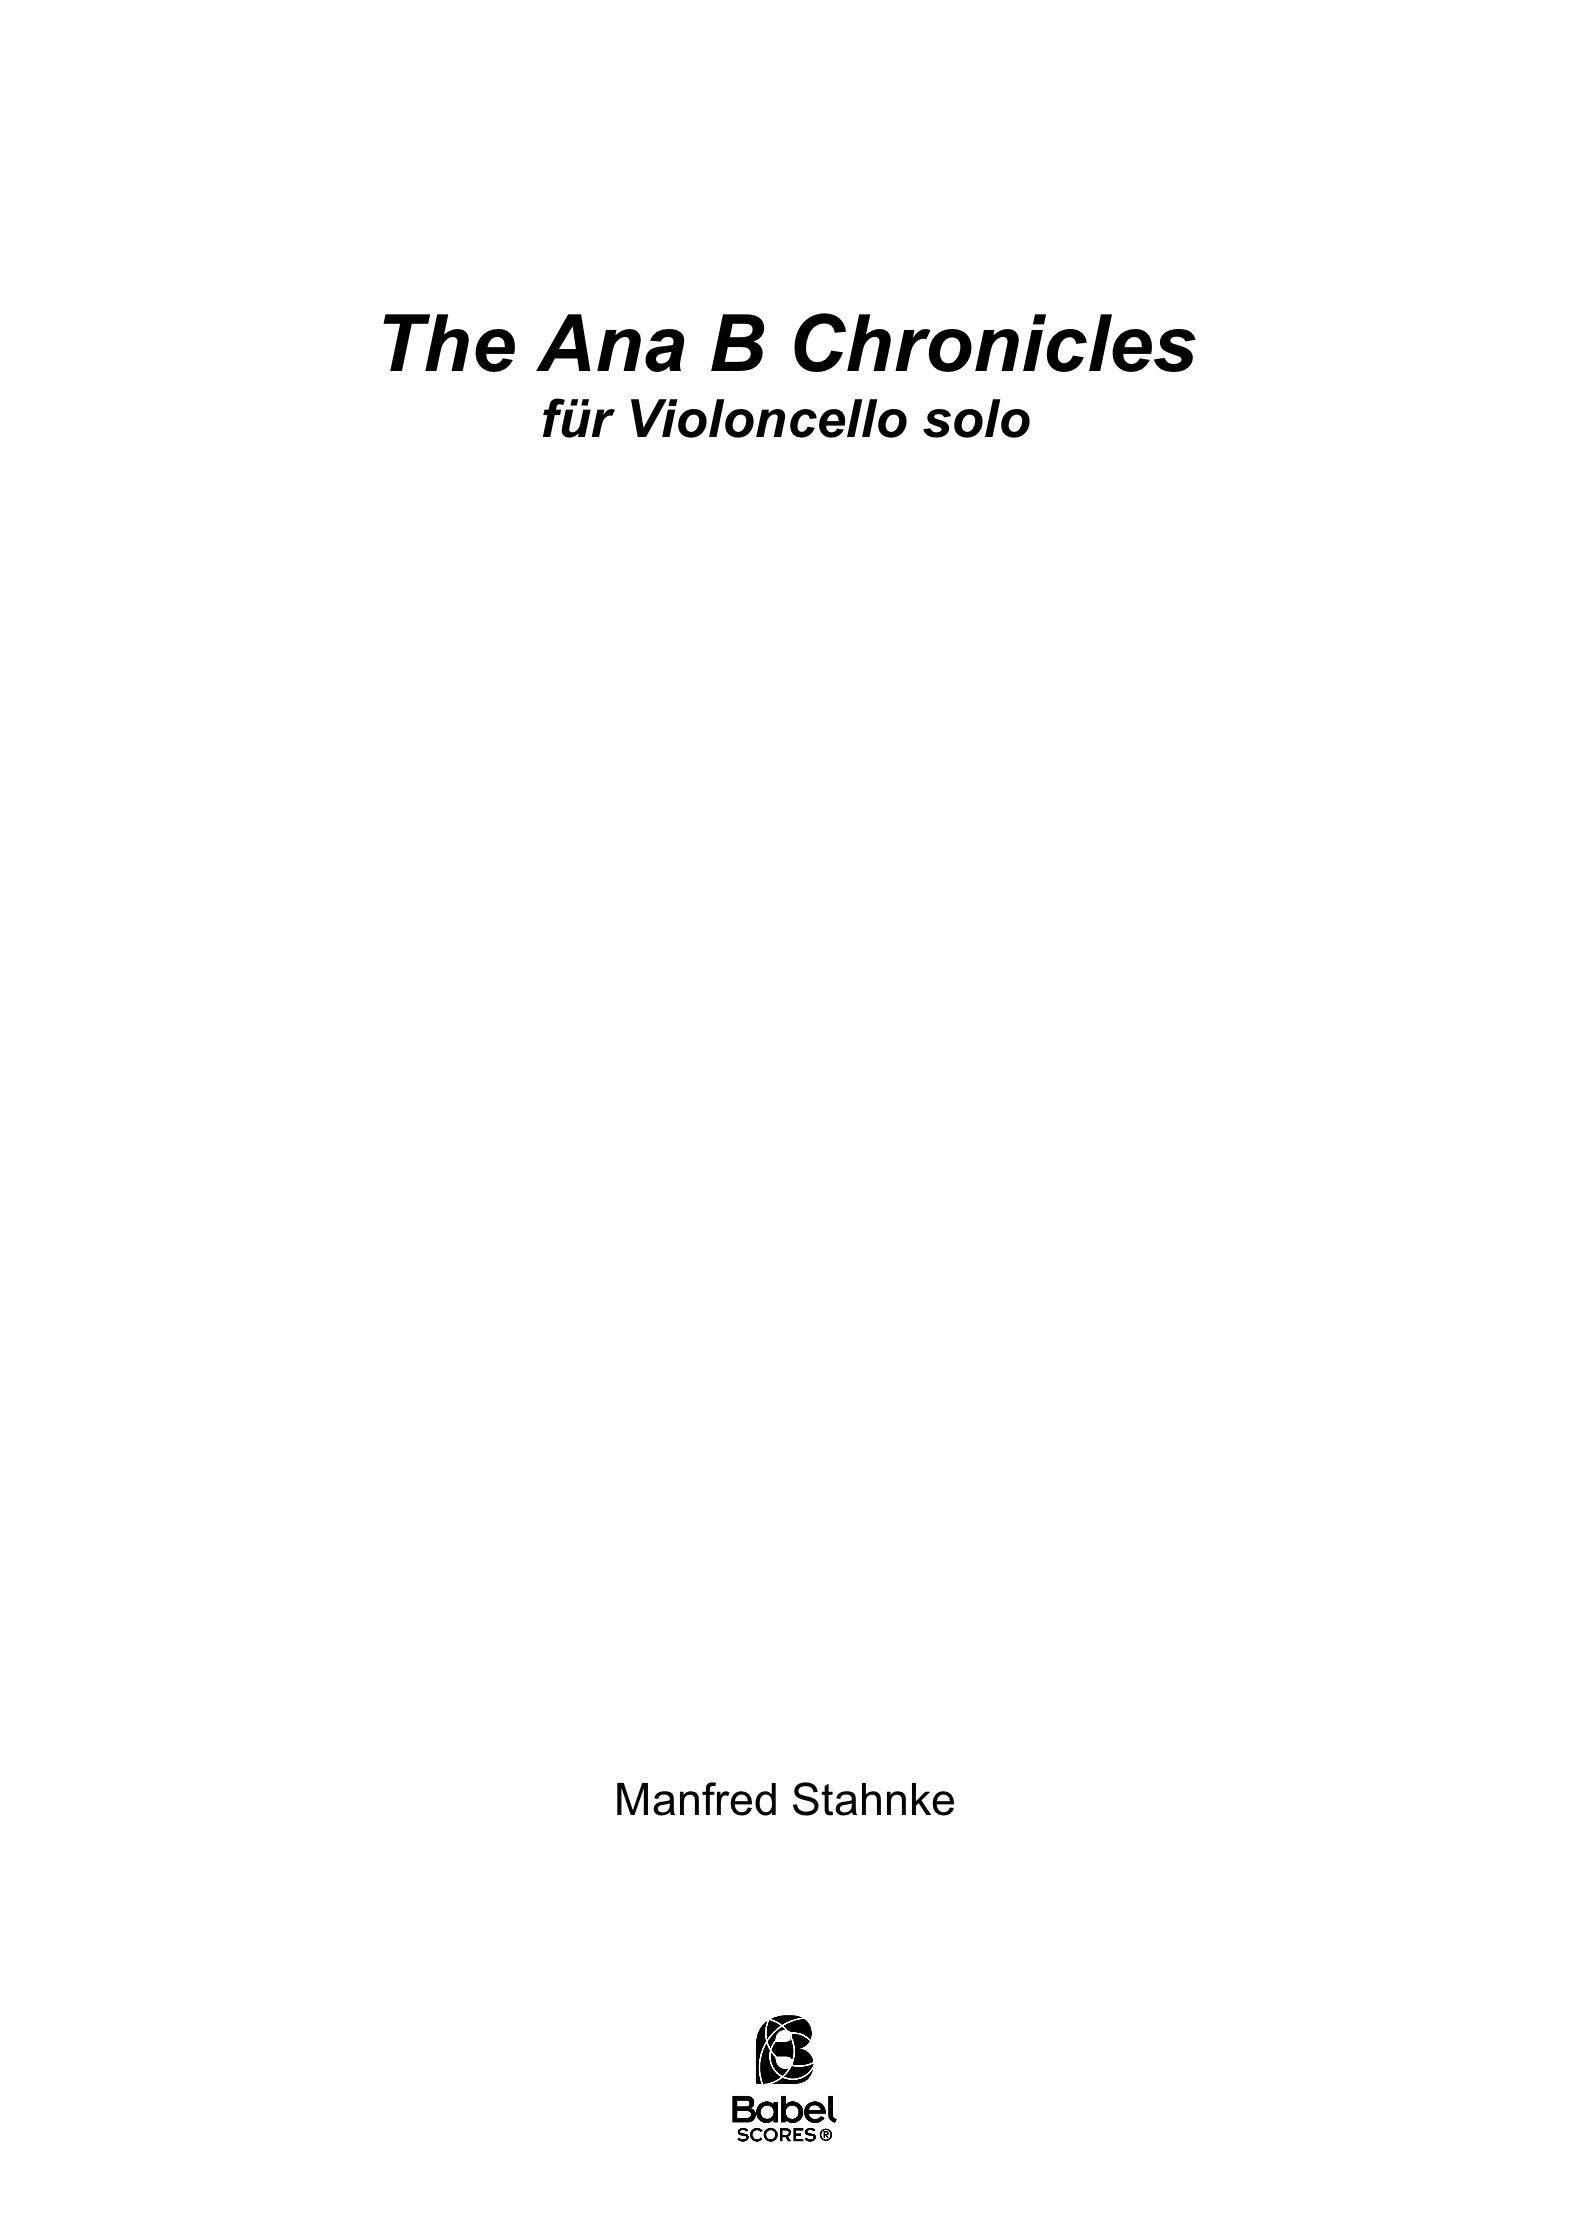 ana b chronicles A4 z 2 157 1 255